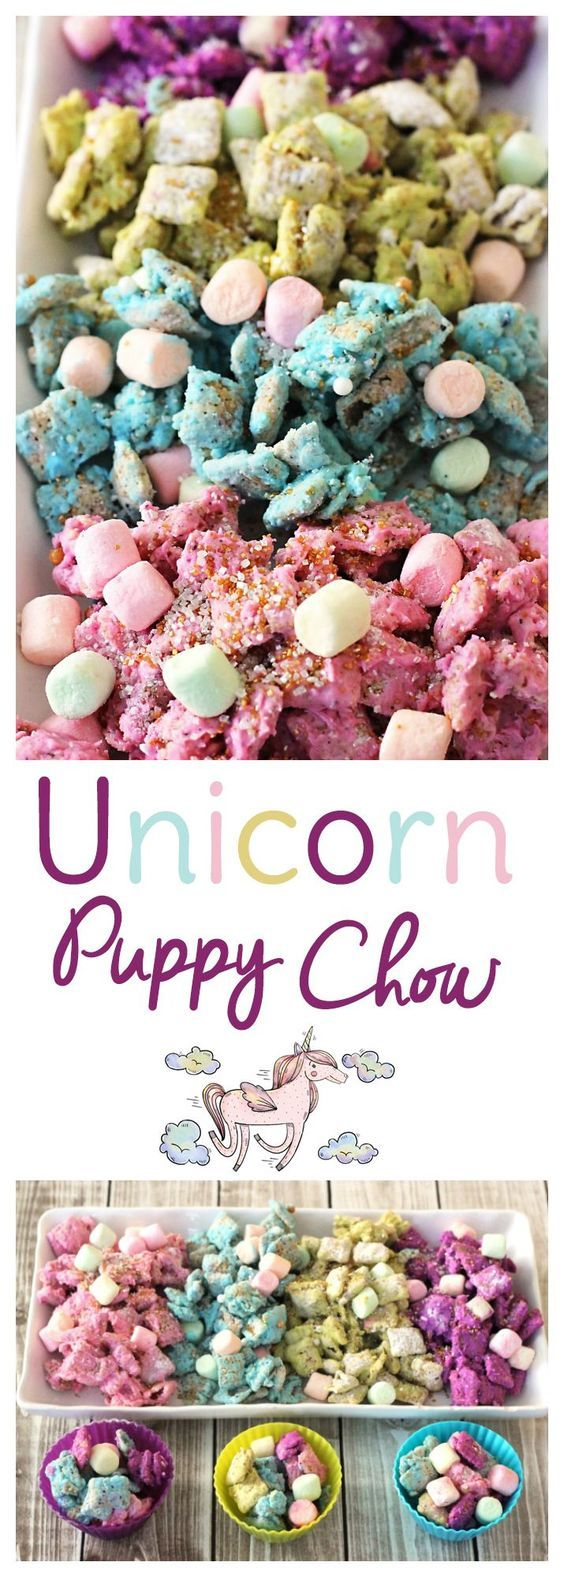 Use blueberry Chex mix and fruity marshmallows to make this delicious unicorn puppy chow (or muddy muddies if you prefer) Perfect for a unicorn birthday party or just a fun gluten free snack for kids.